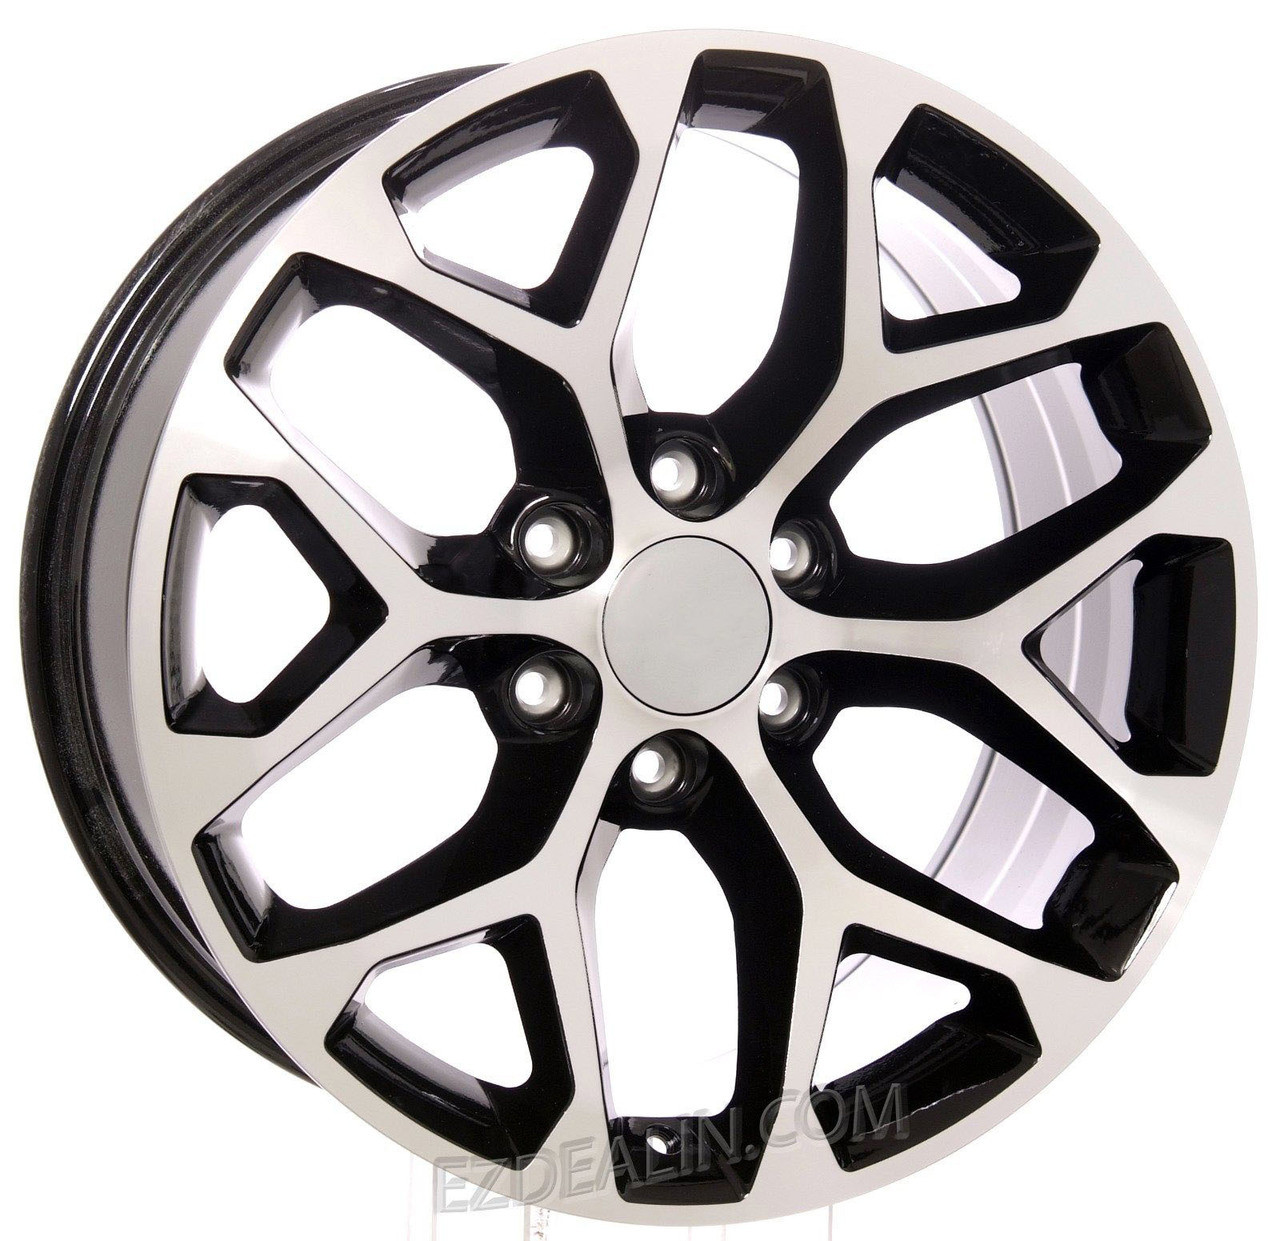 "Black and Machine 20"" Snowflake Wheels for GMC Sierra, Yukon, Denali - New Set of 4"